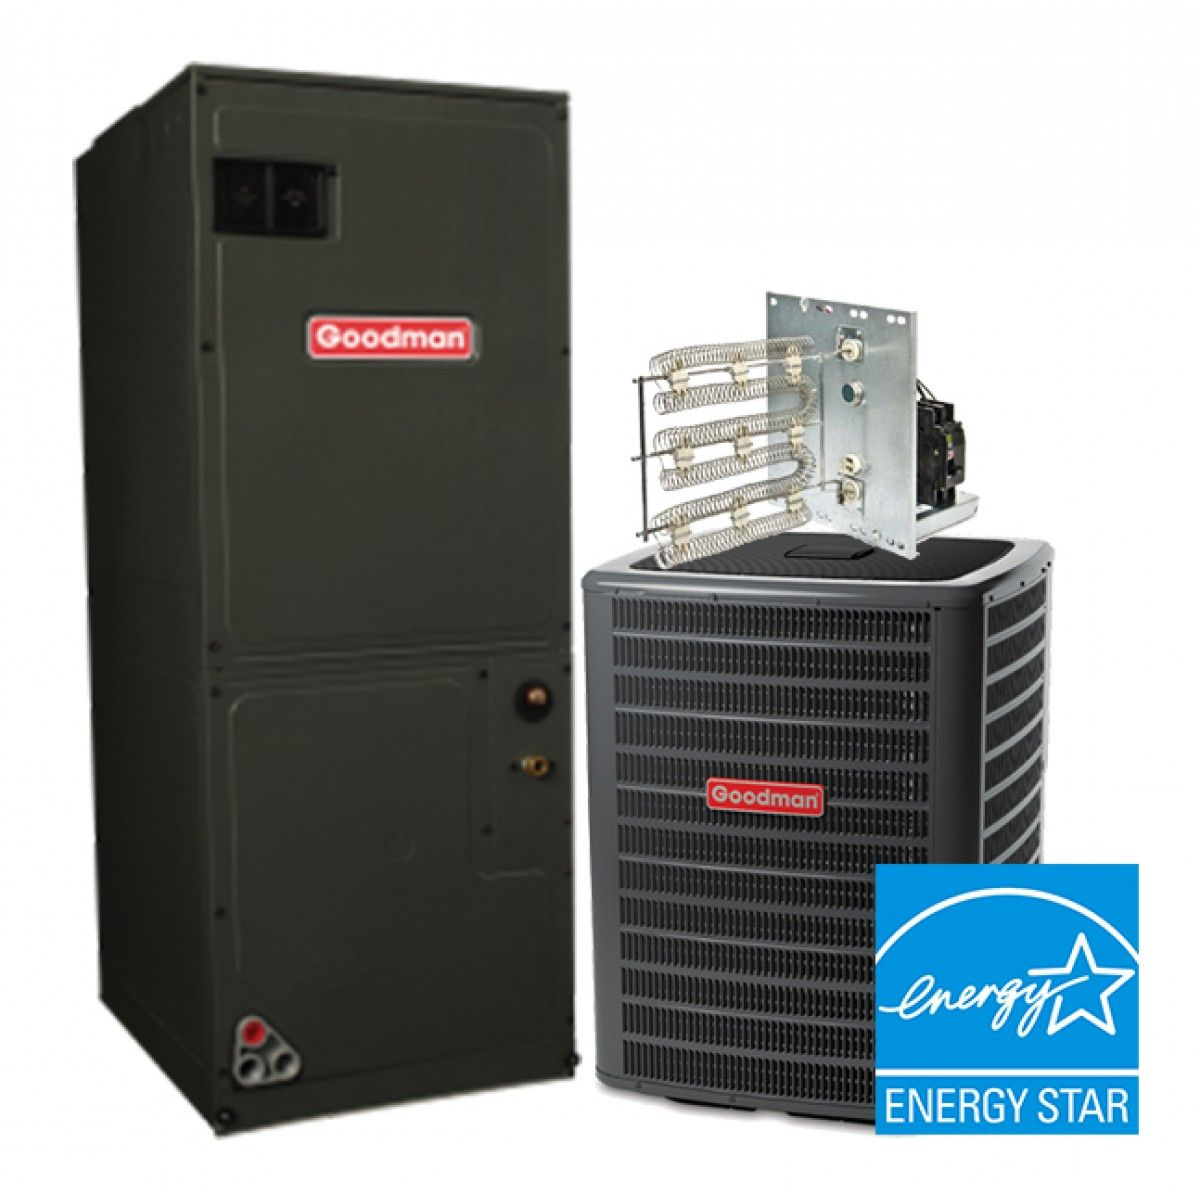 Goodman 1 5 ton 16 seer heat pump system star energy in 1 5 star energy